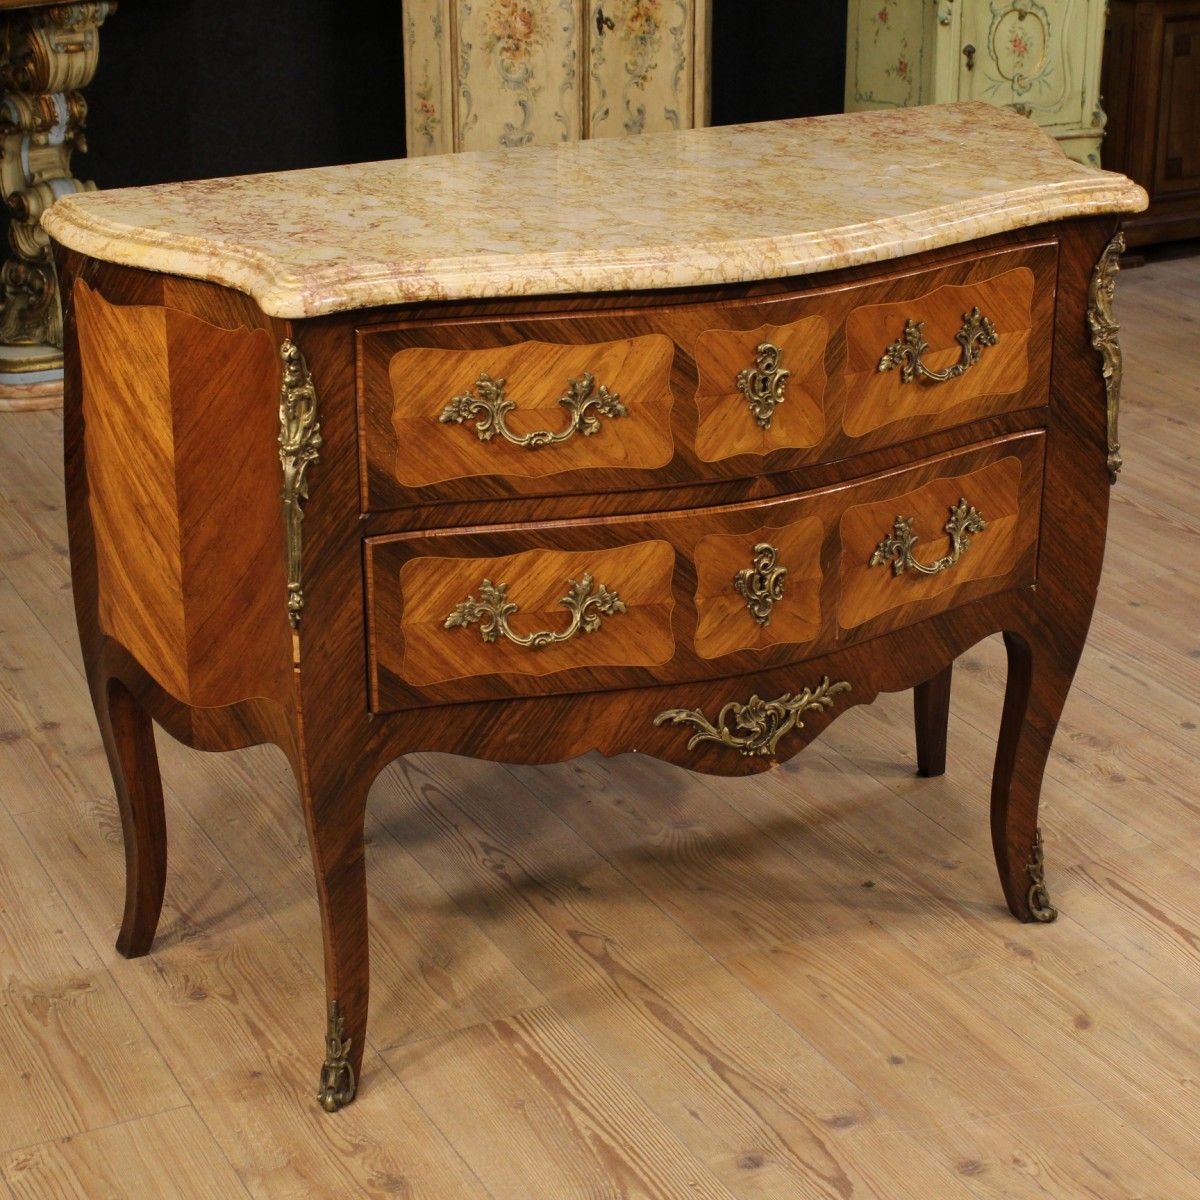 Commode furniture - Price 1450 Elegant French Commode From The Late 19th Century Furniture Made By